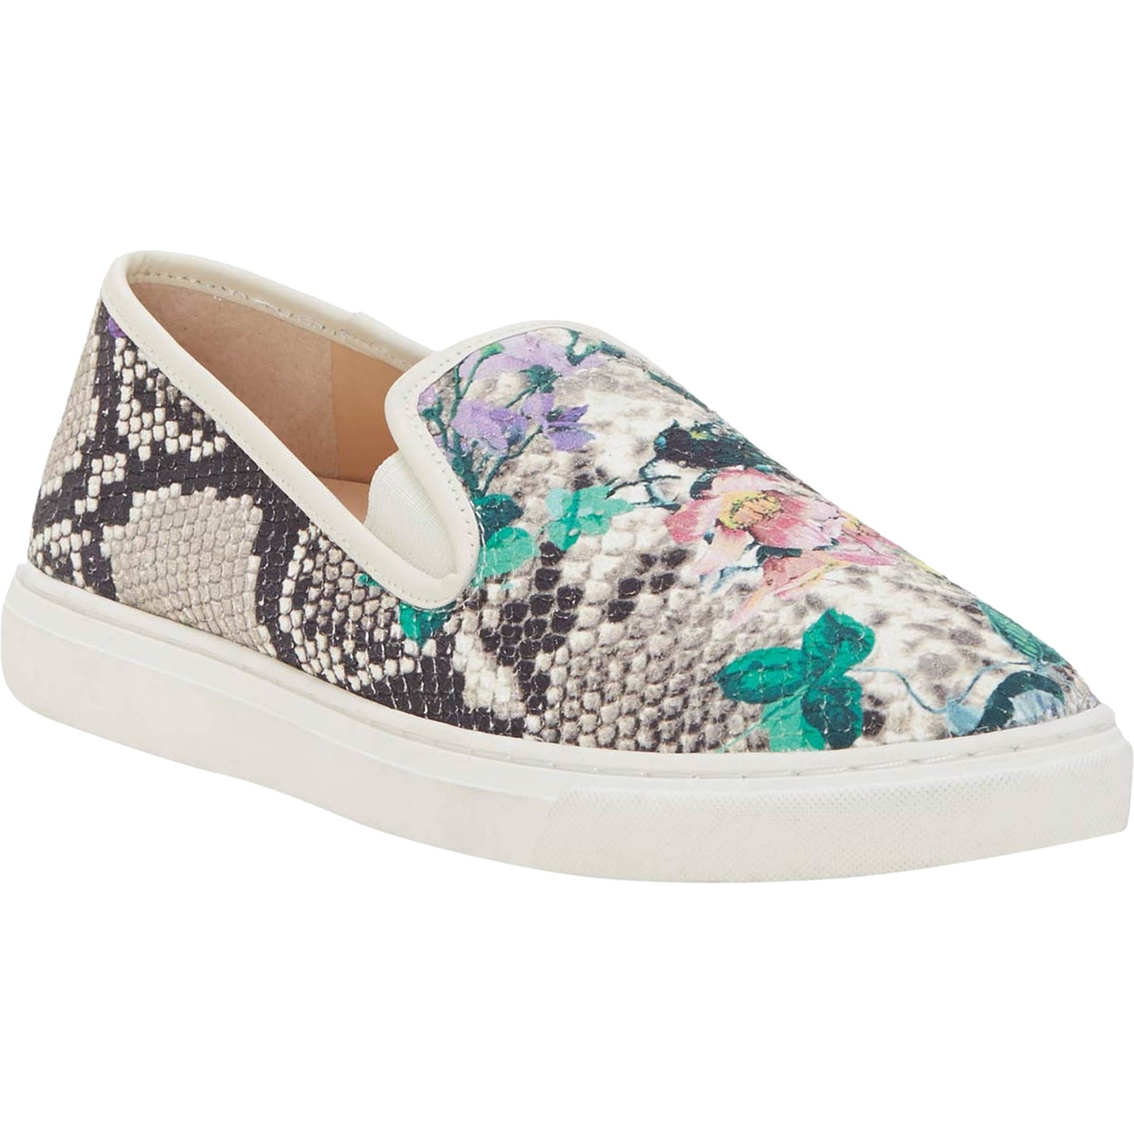 Vince Camuto Becker Slip On Sneakers